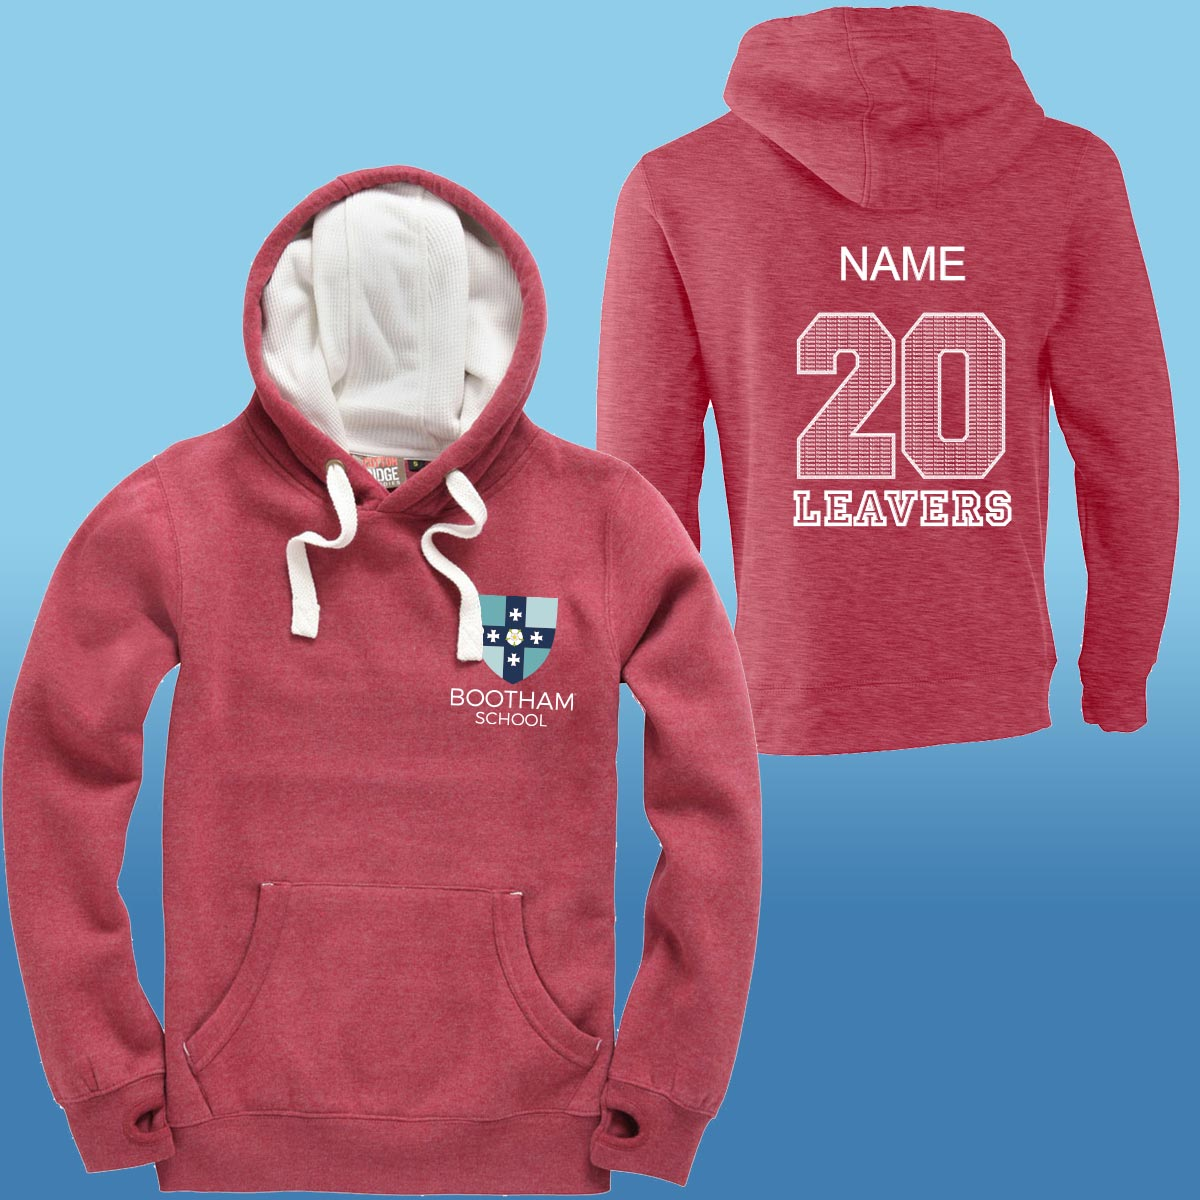 Bootham Junior School Leavers Hoodies